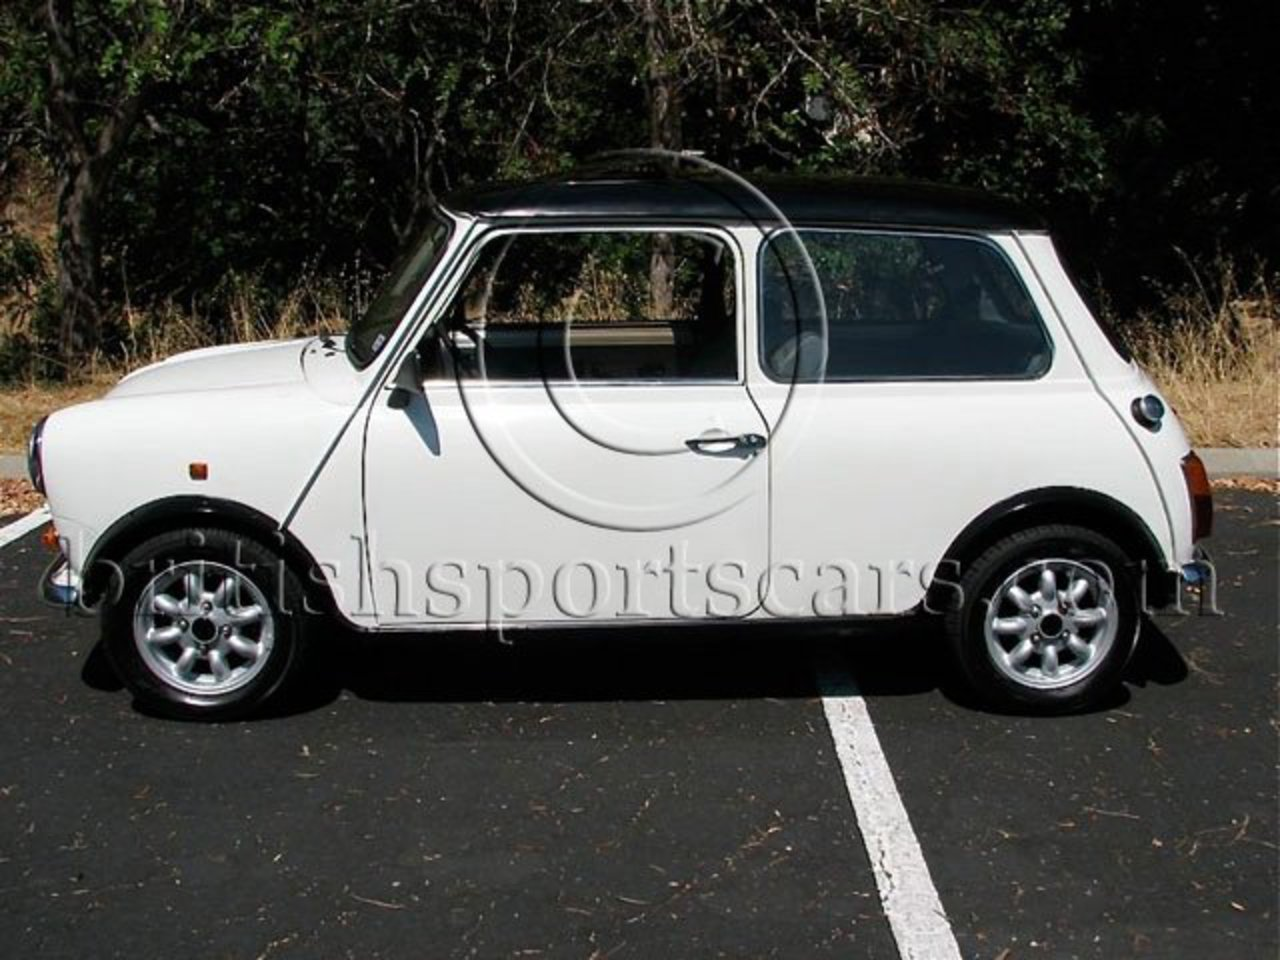 British Sports Cars: / 1972 Mini Cooper 1300 for sale / British ...